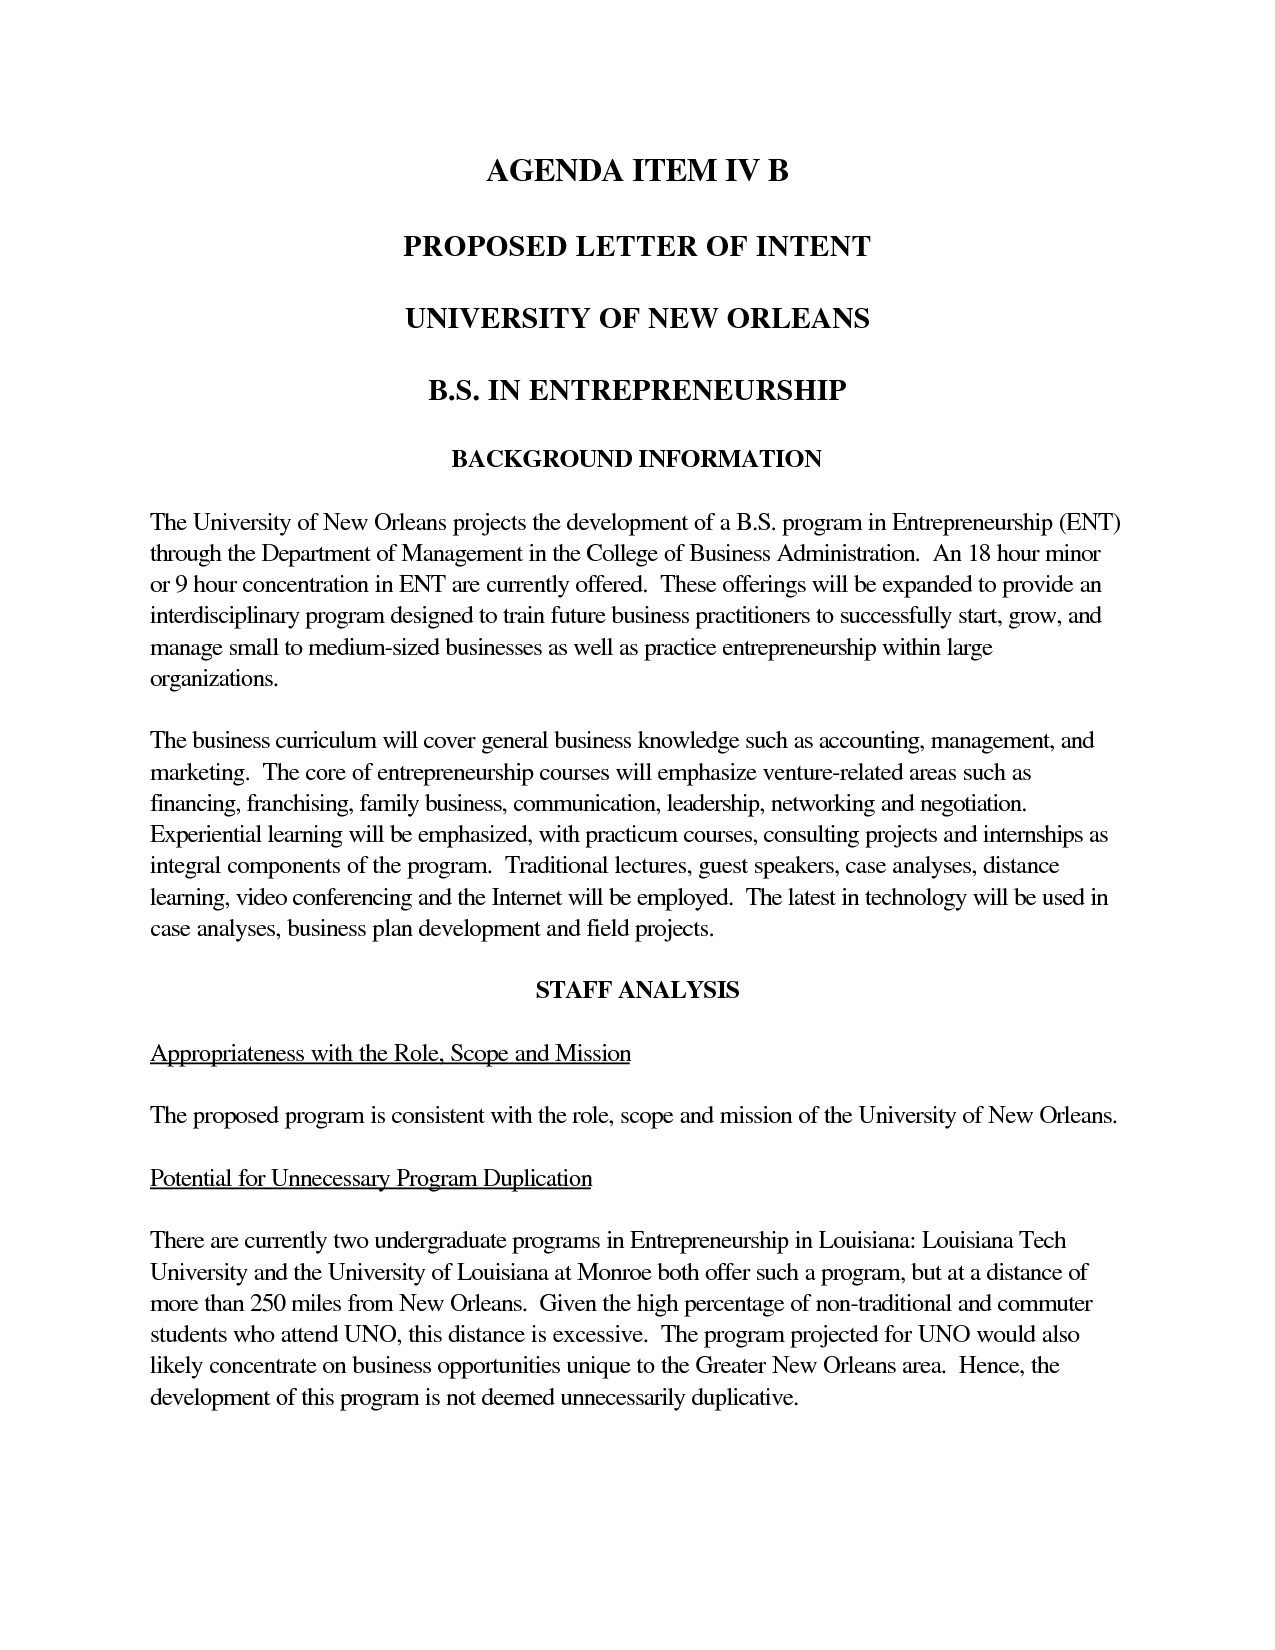 Letter Of Intent Template University  GoogleHaku  Letter Of